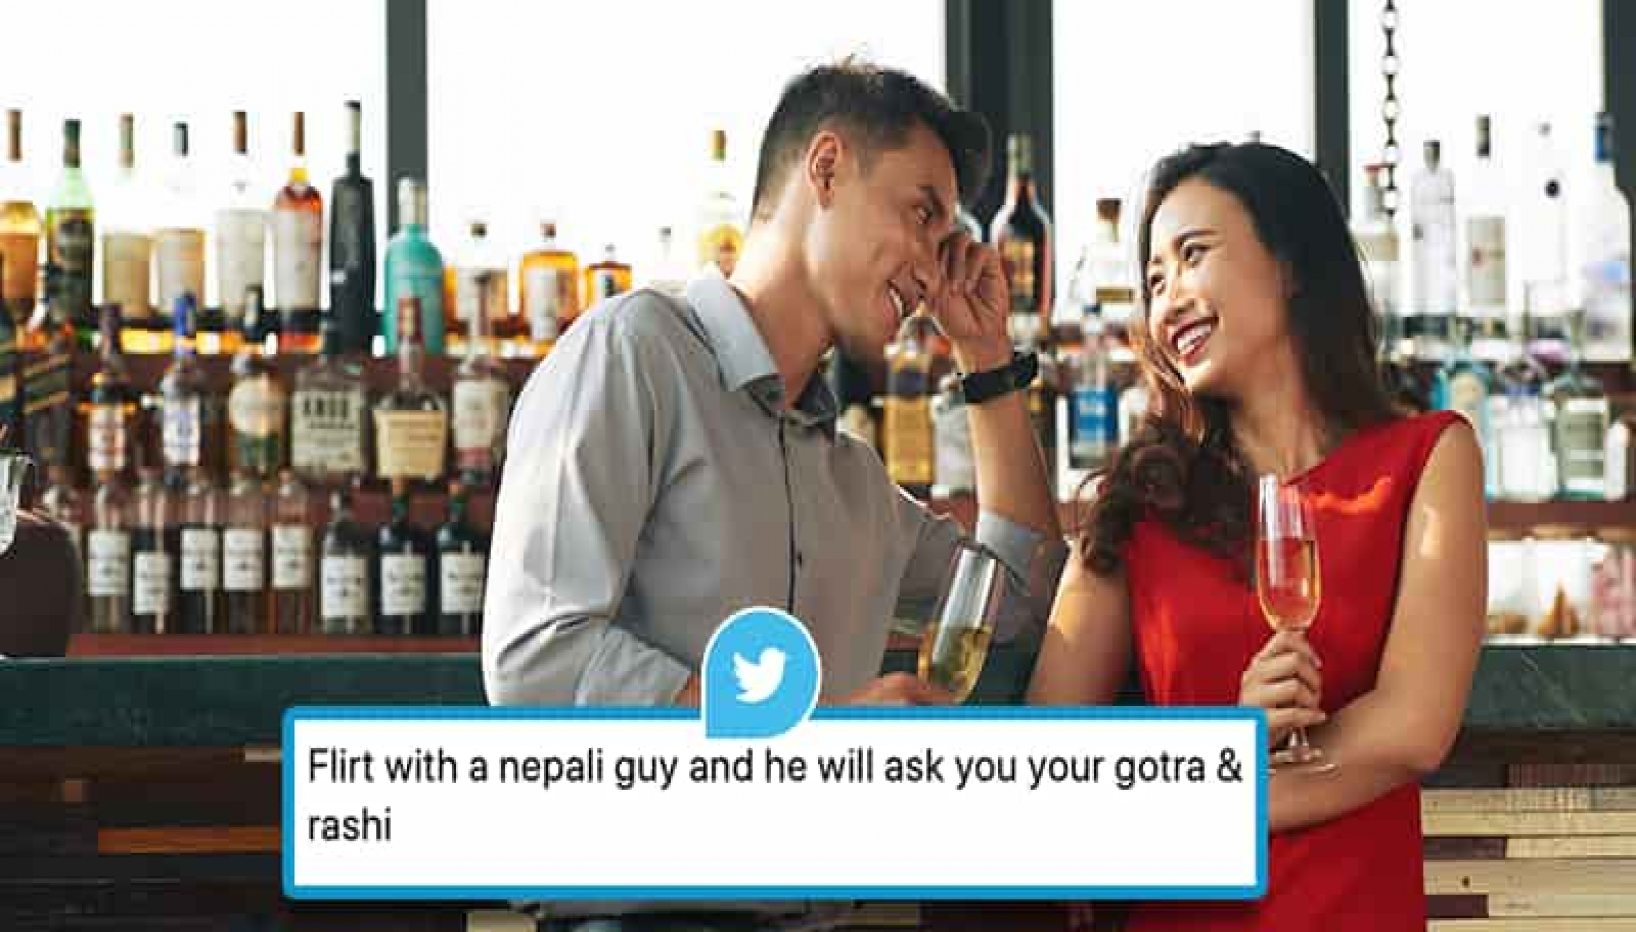 15 Tweets That Hilariously Describe The Flirting Scene In Nepal